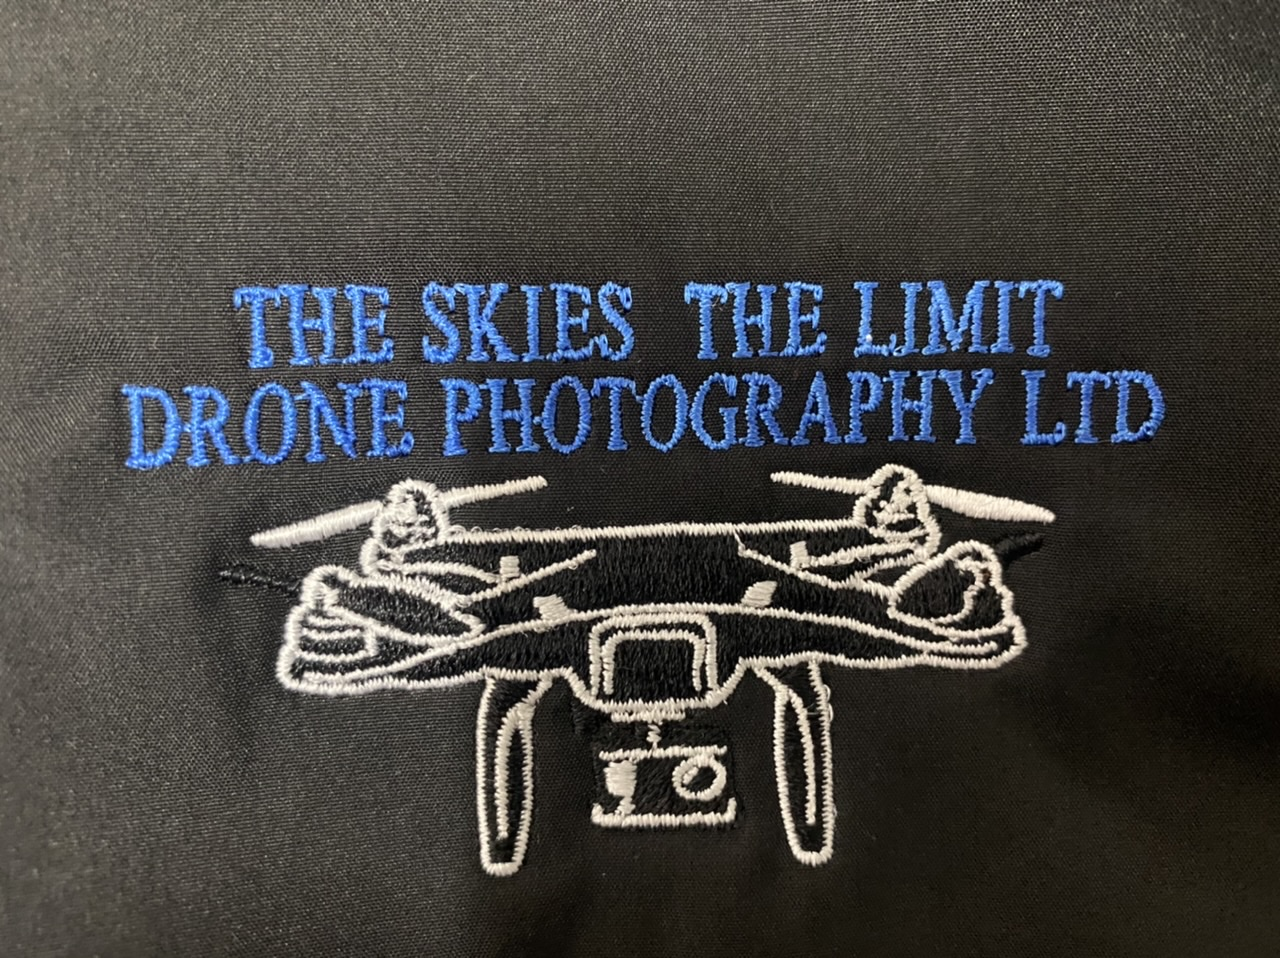 The Skies The Limit drone photography Ltd